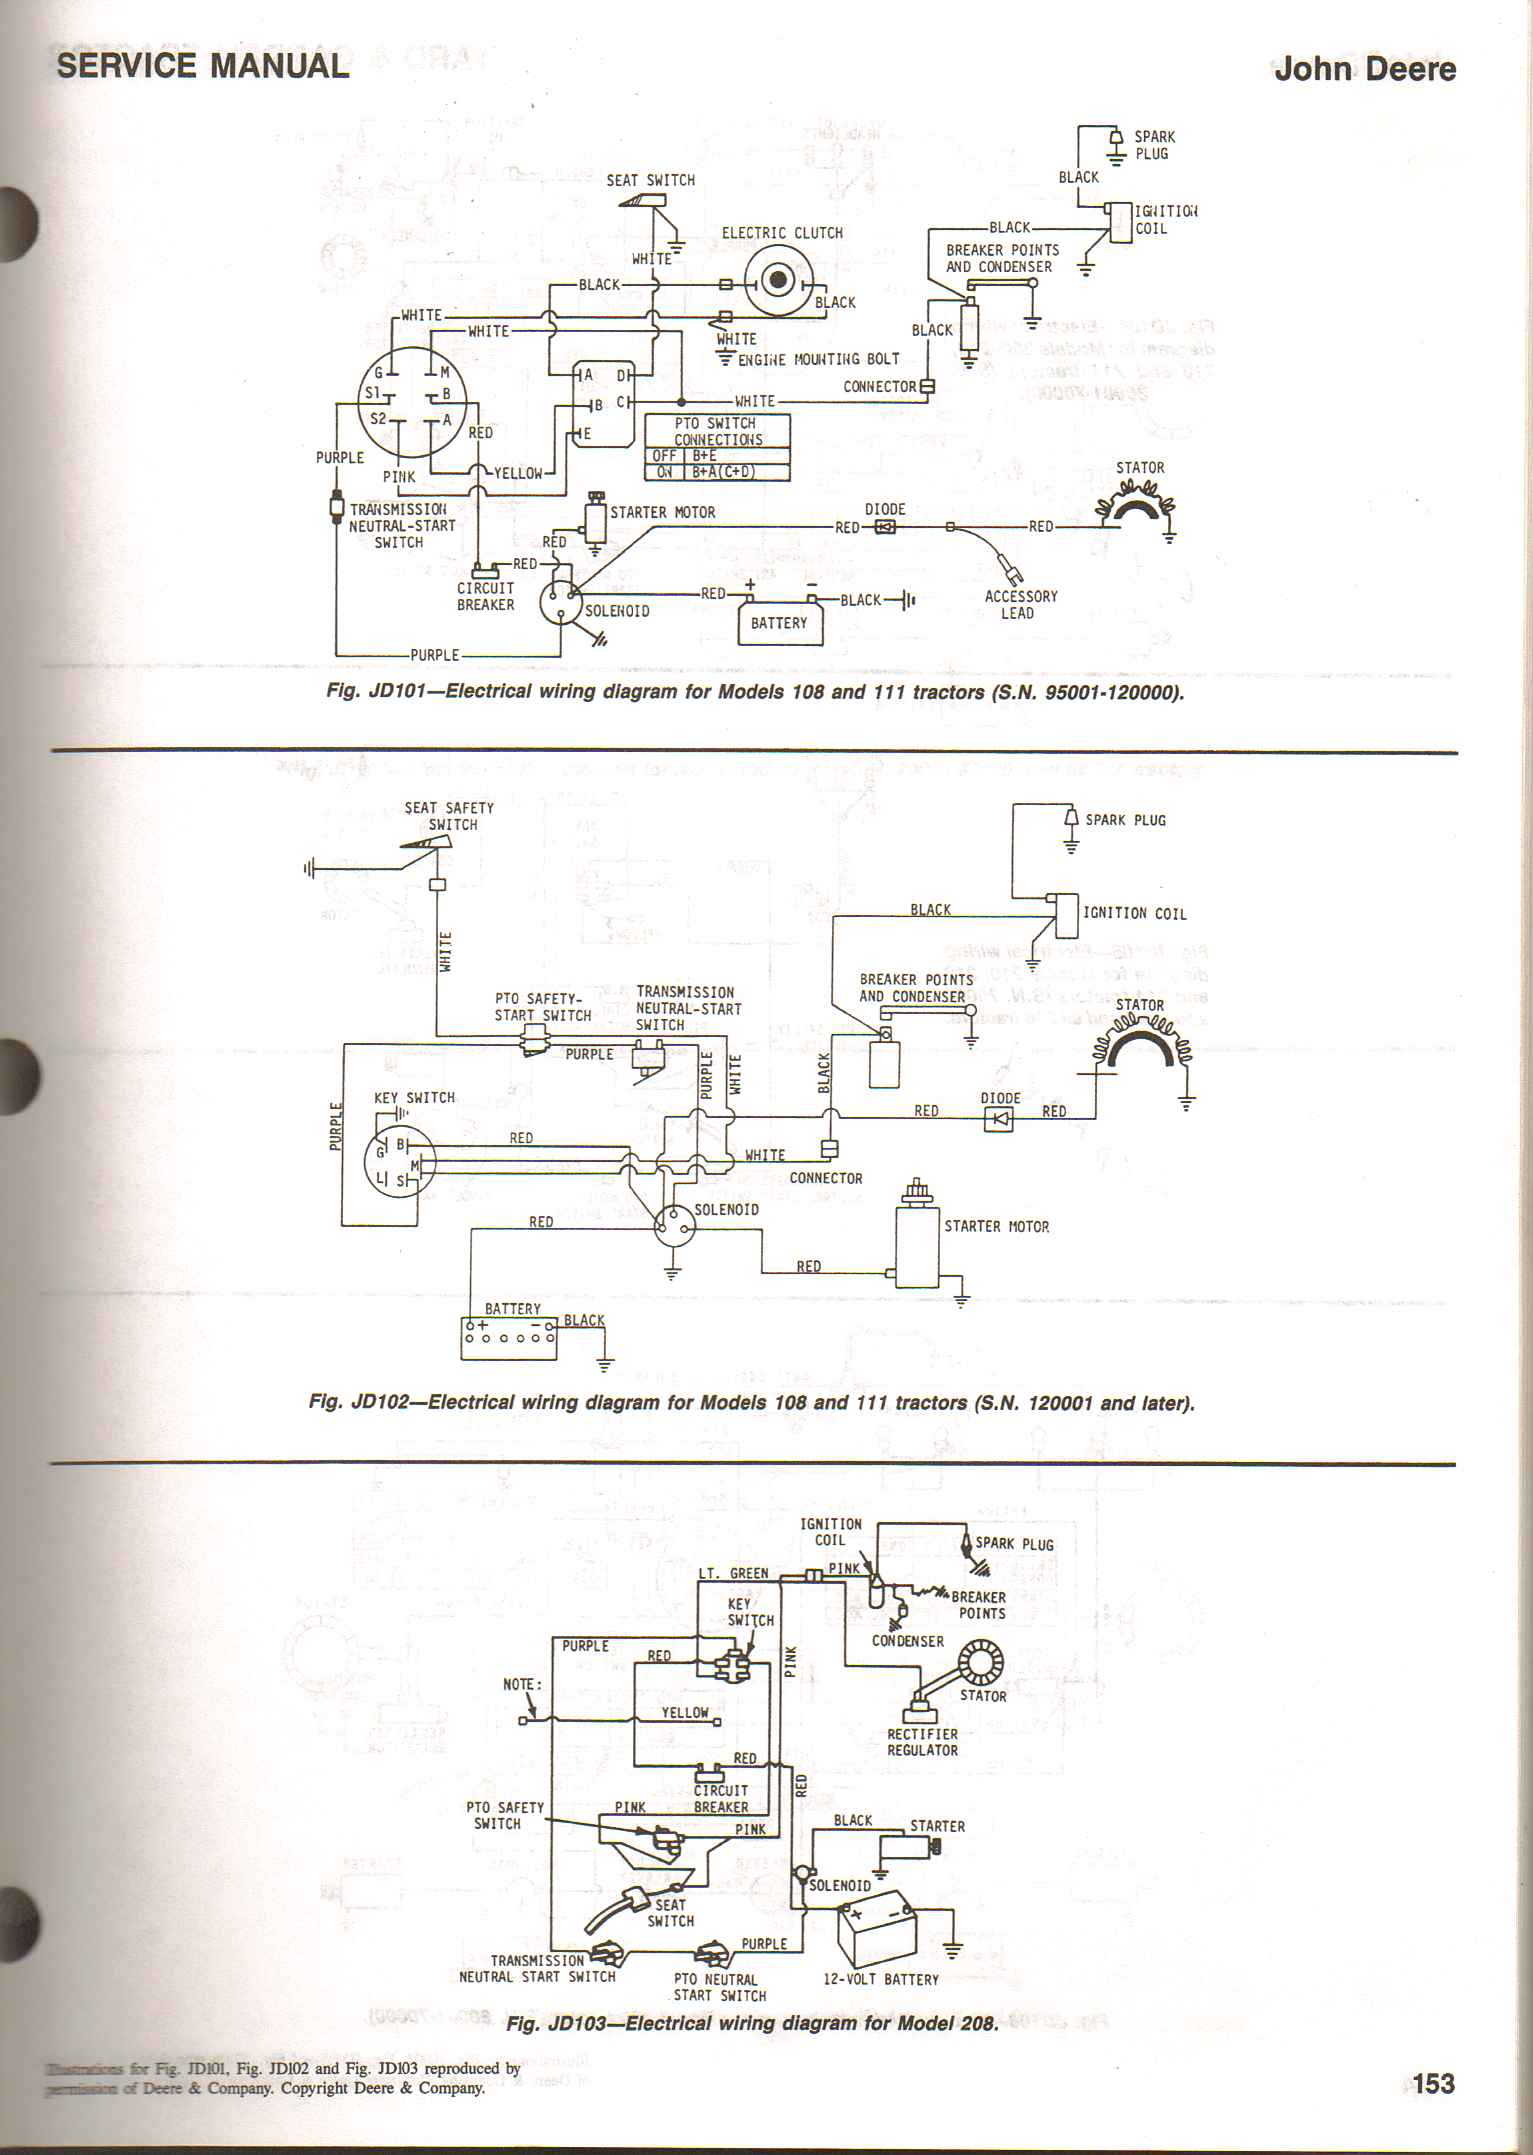 wiring diagram for john deere sabre the wiring diagram john deere stx38 wiring diagram nilza wiring diagram